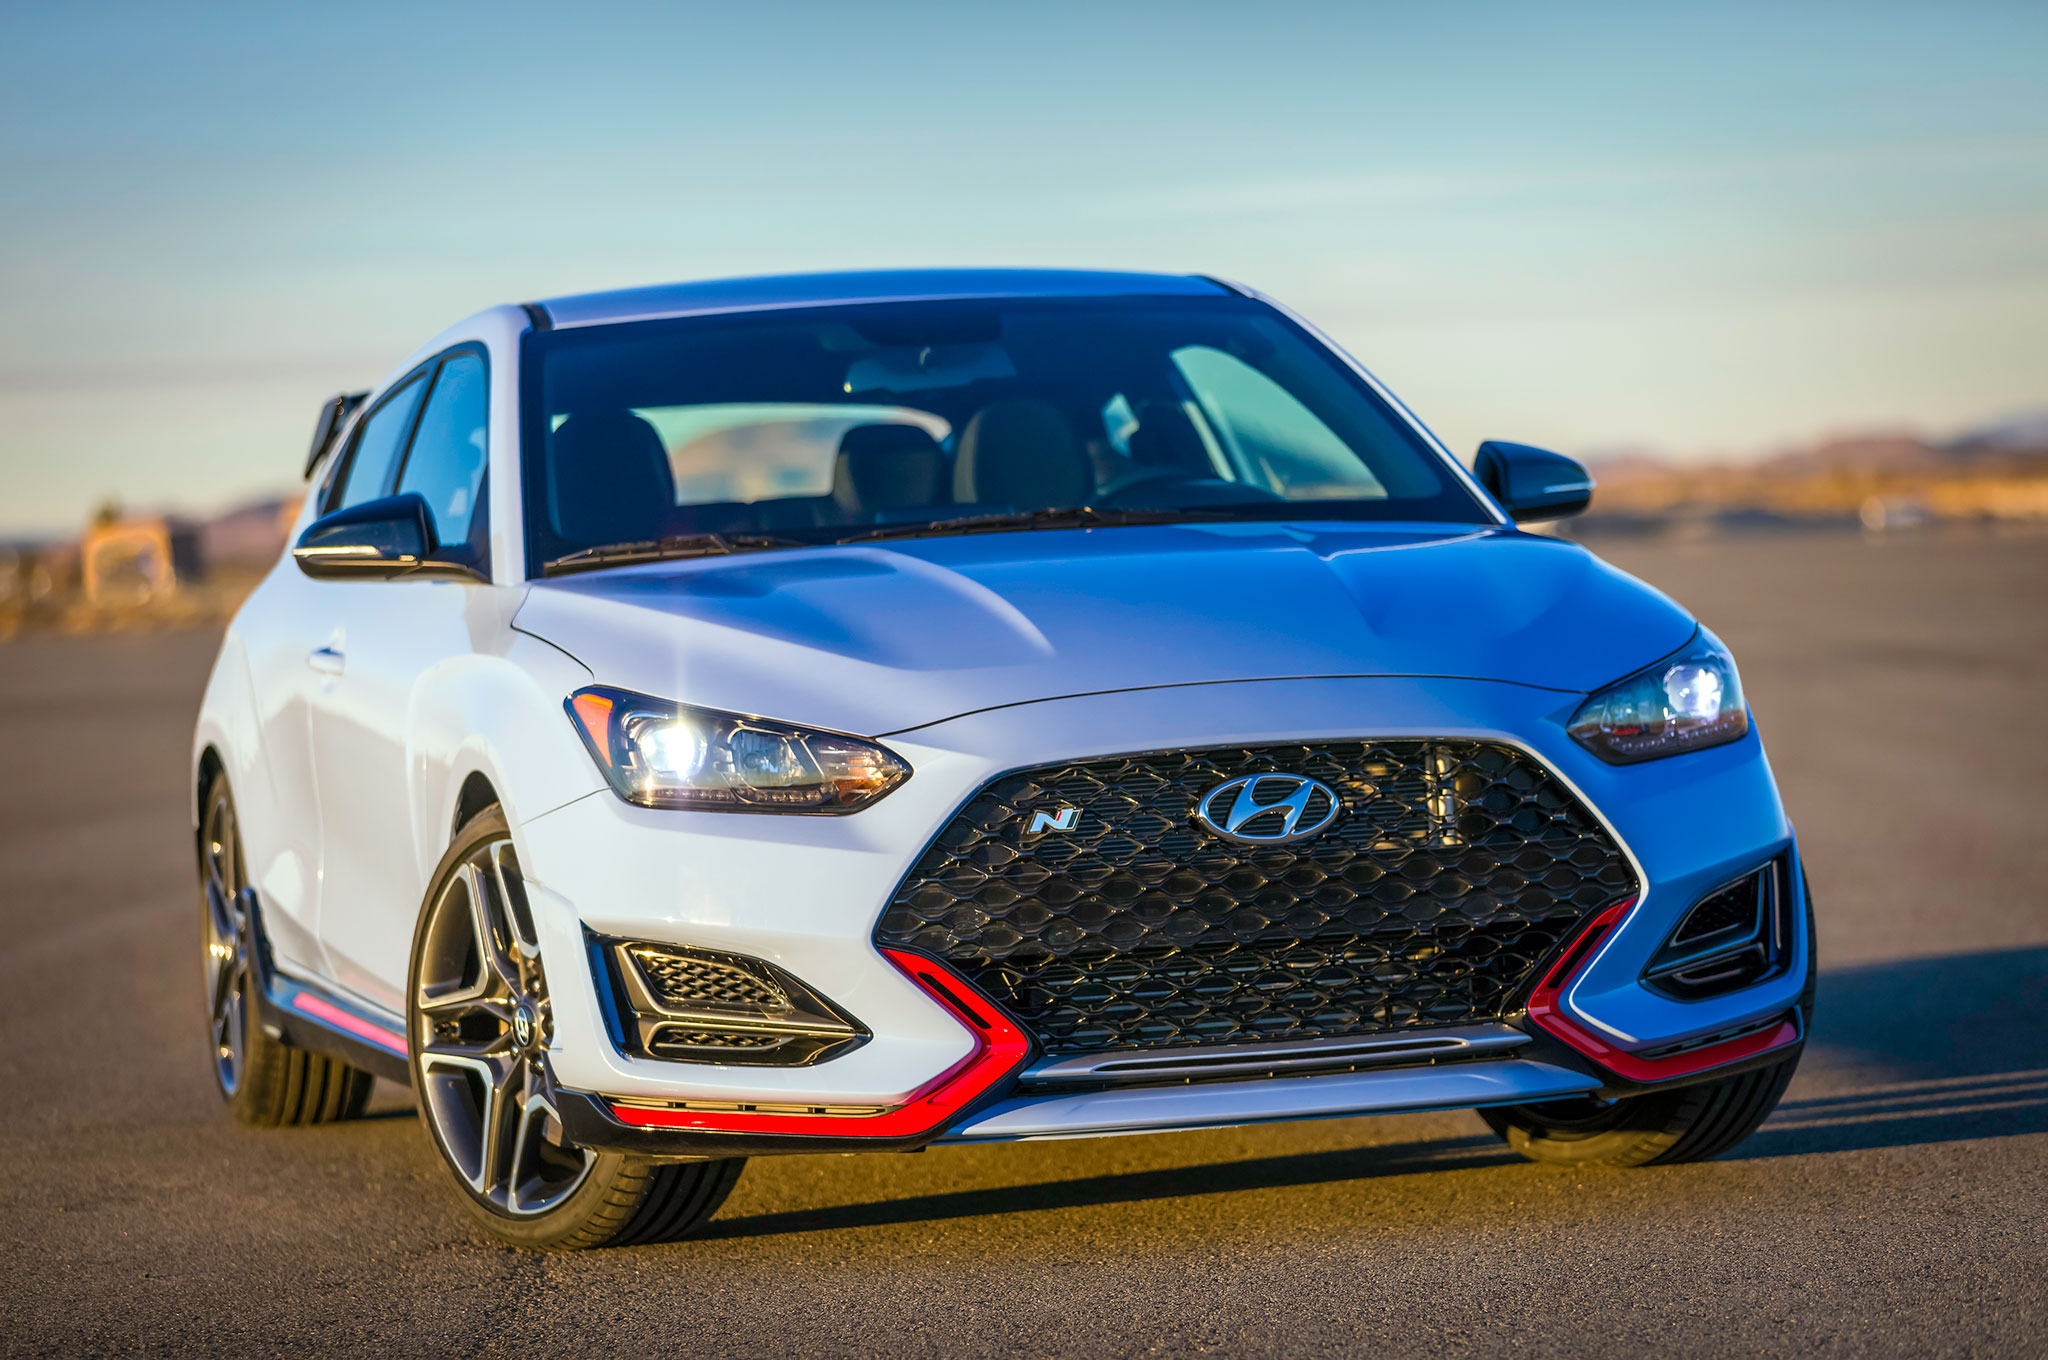 Focus St 19 Inch Wheels >> 2019 Hyundai Veloster N is the Brand's First Hot Hatch Bound for the U.S. | Automobile Magazine